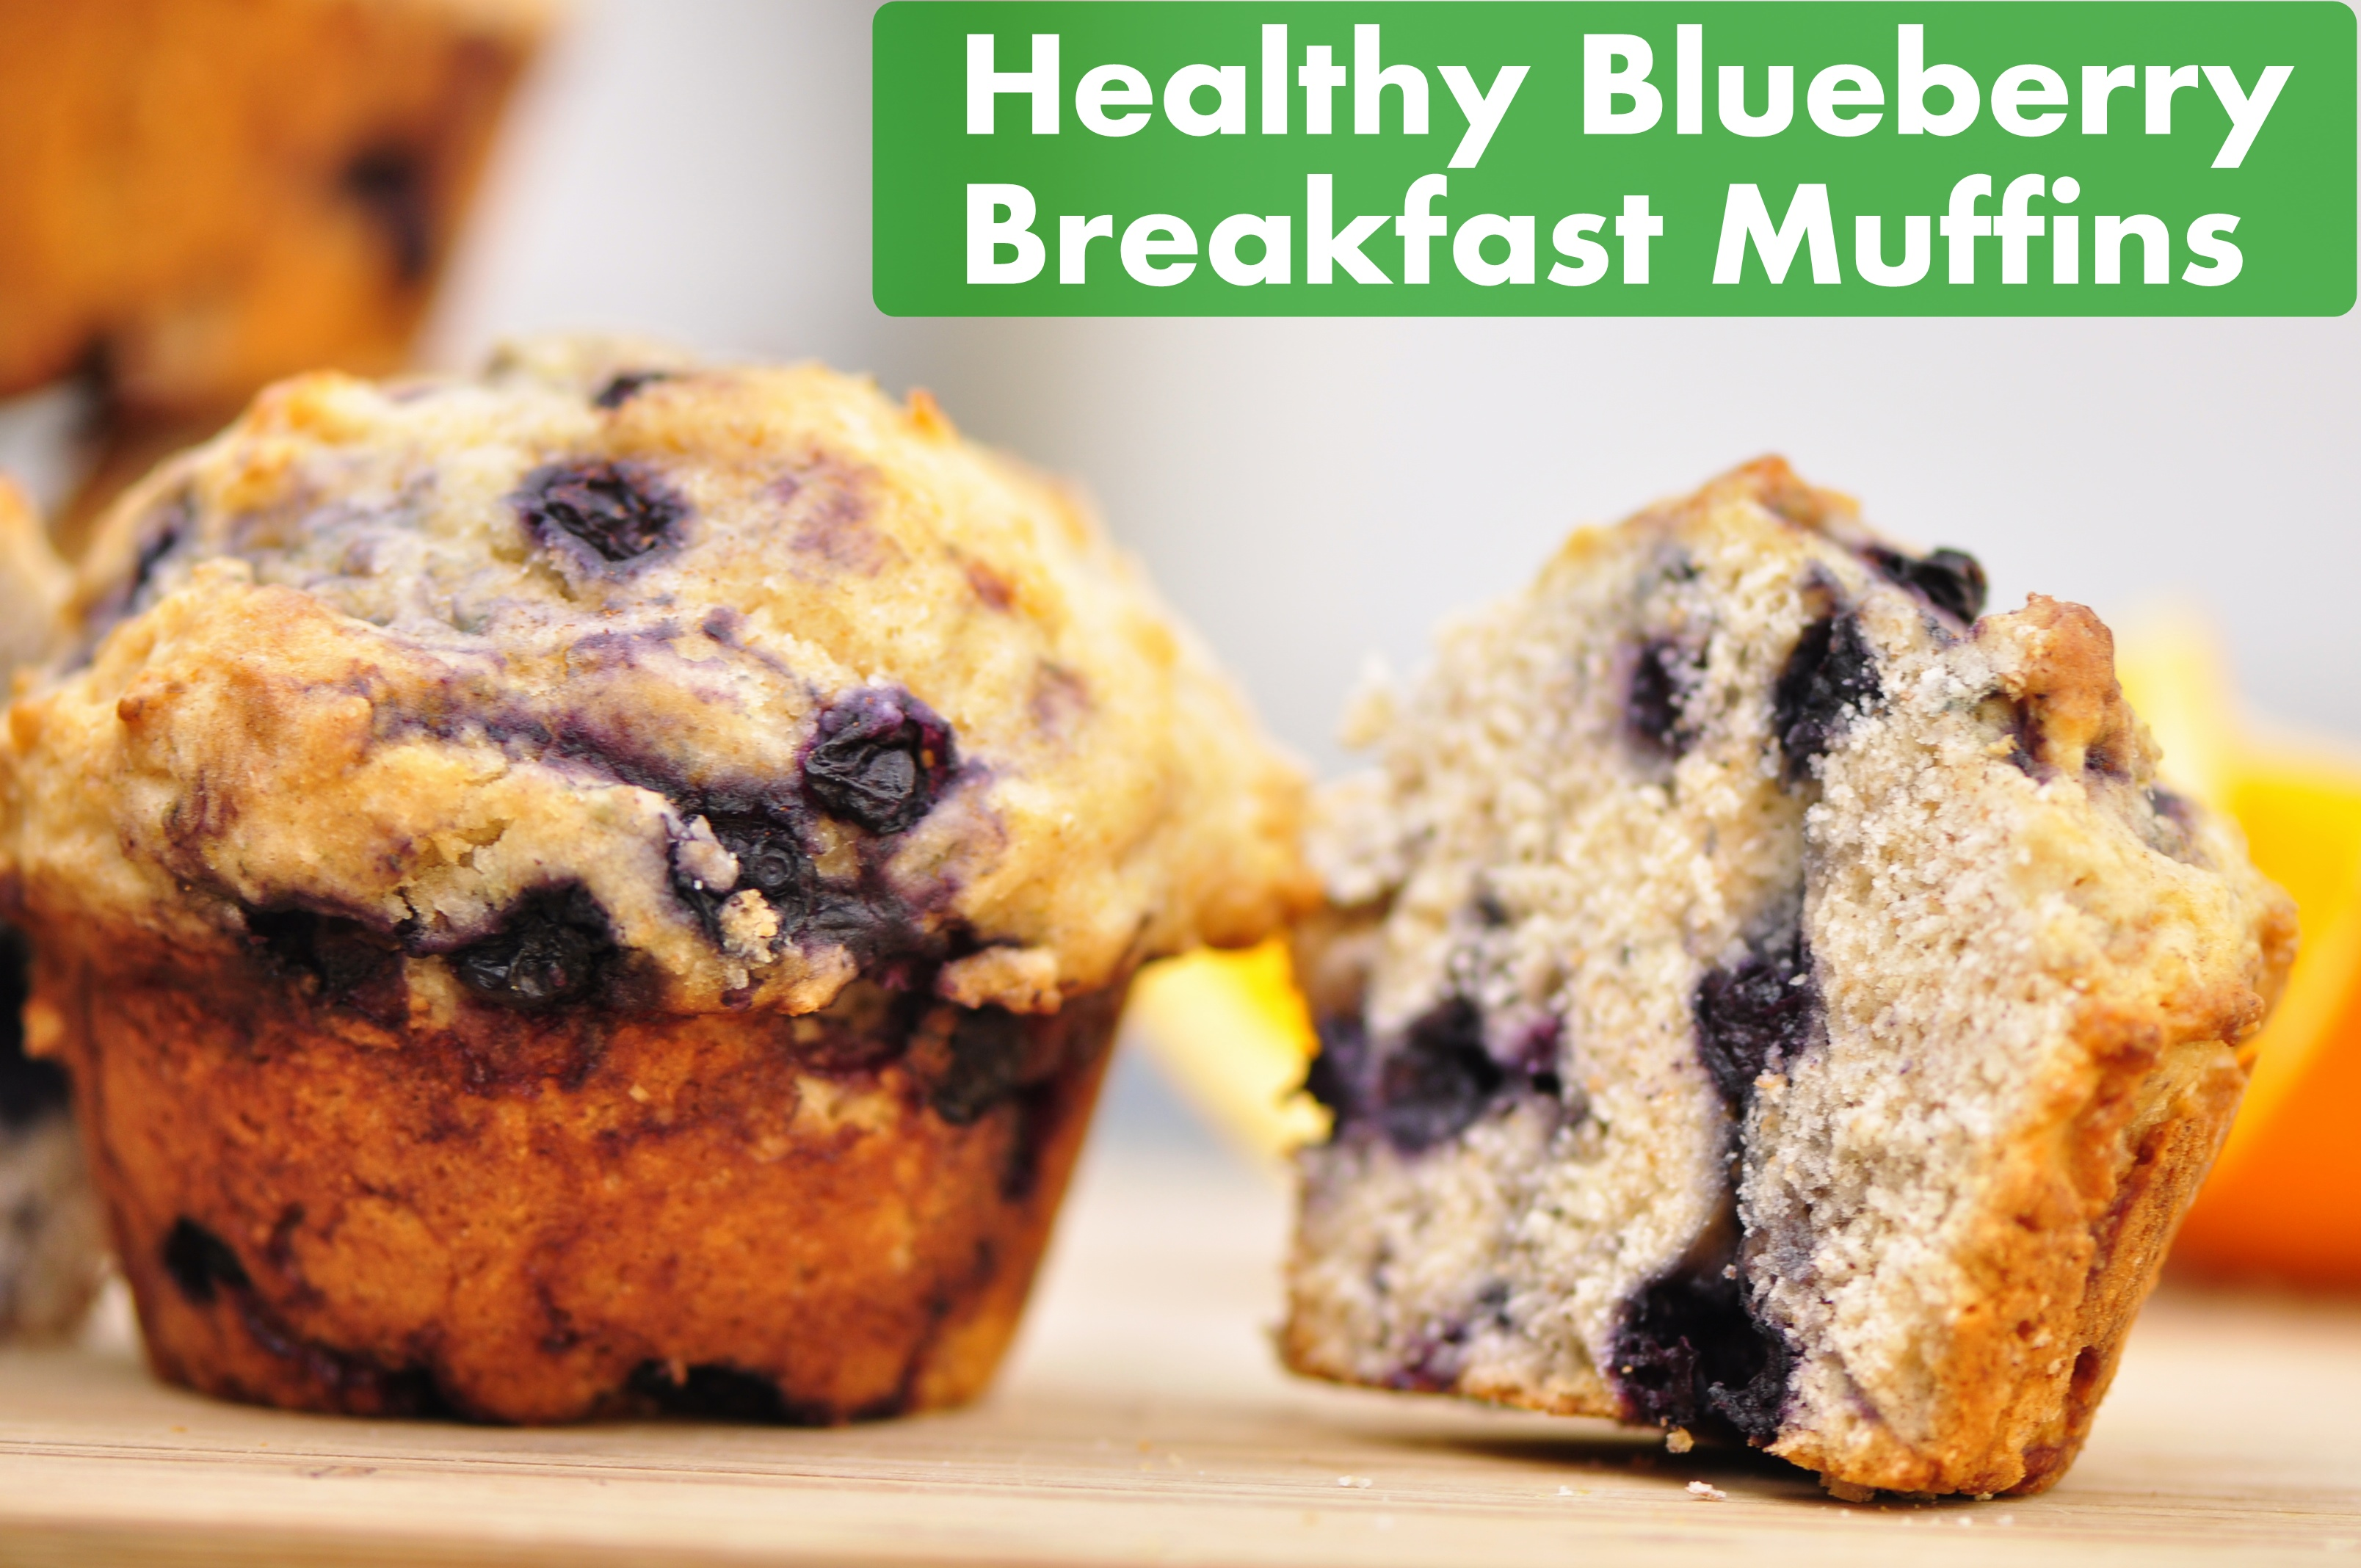 Healthy Blueberry Breakfast Muffins | the vegetarian ginger